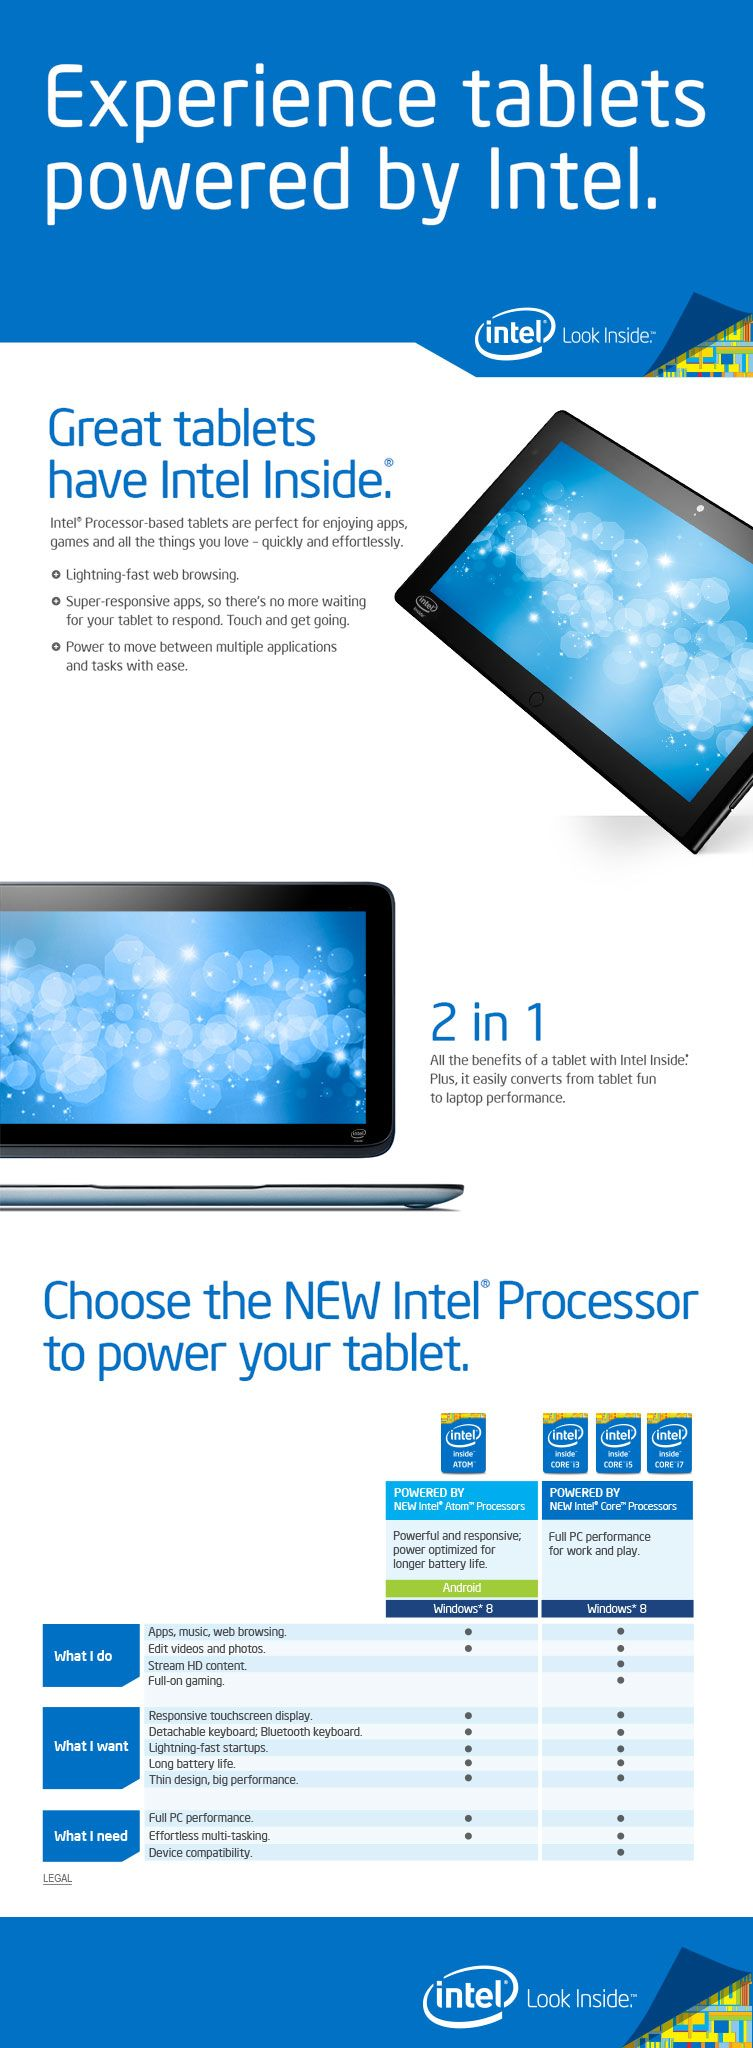 Experience tablets powered by Intel